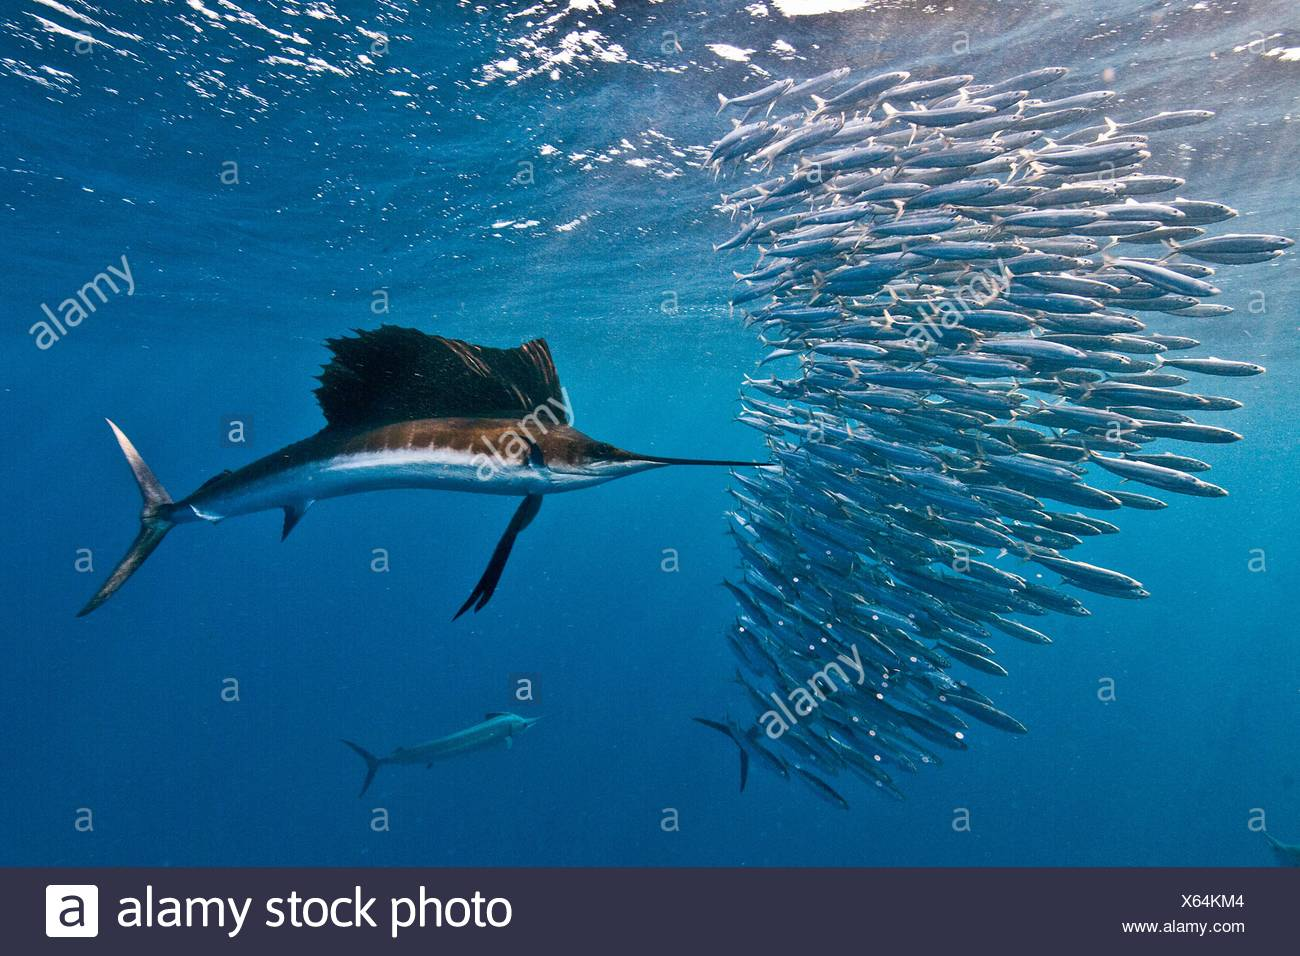 Atlantic sailfish (Istiophorus albicans) attacking a sardine baitball hoping to strike one with its serrated bill Isla Mujeres - Stock Image